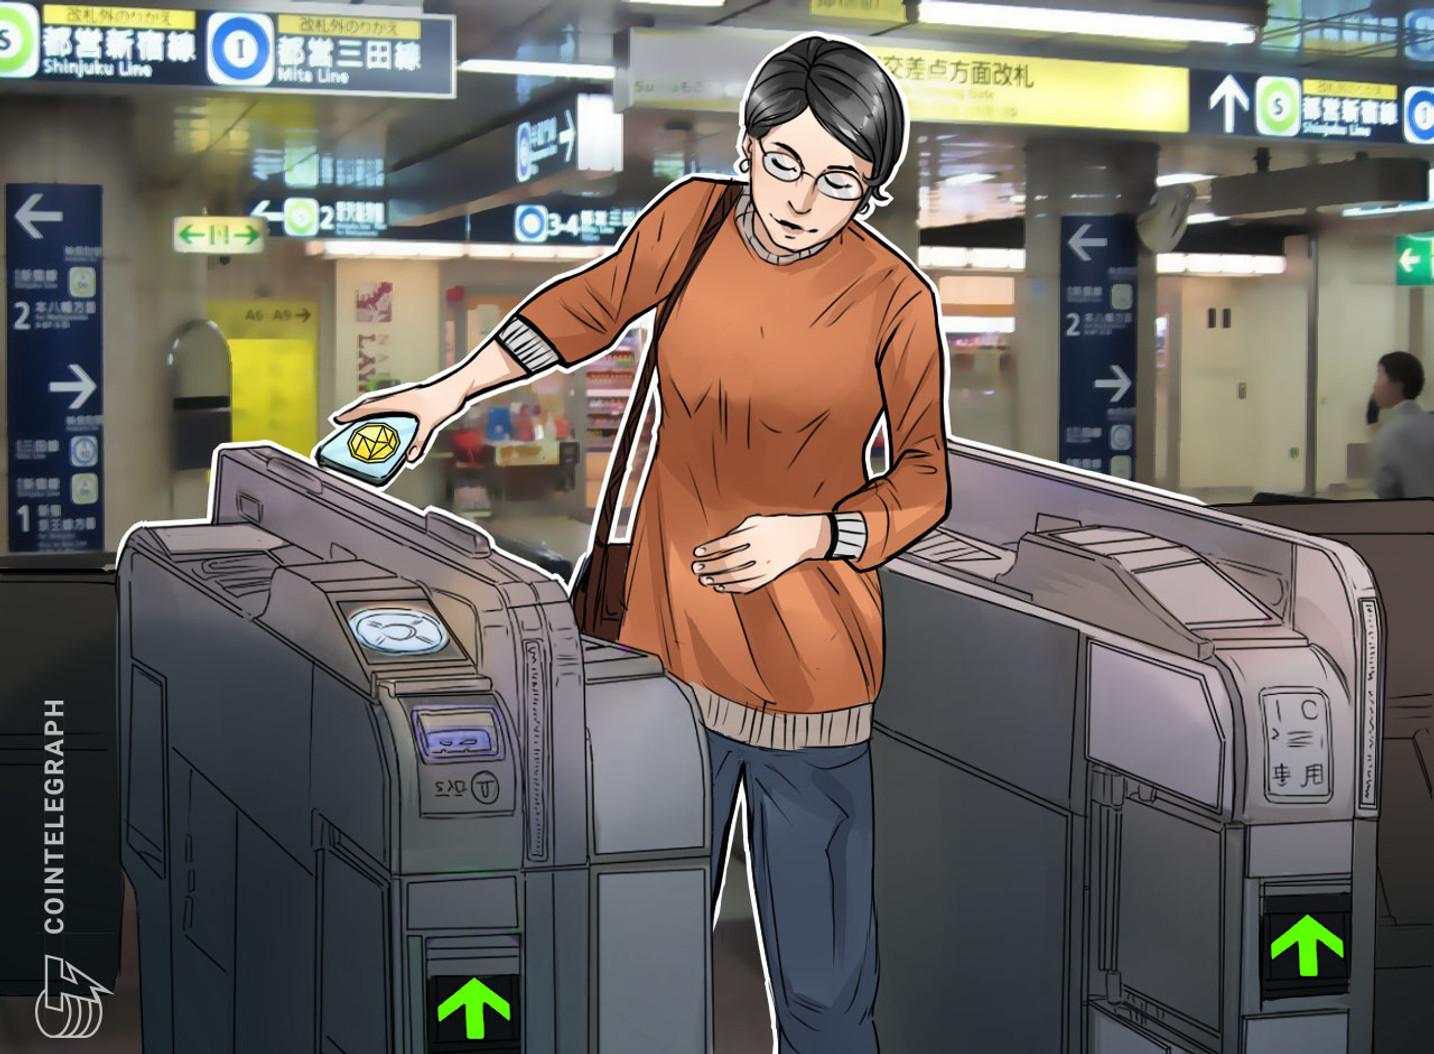 Cashless-Bound: Japan's Transport and E-Commerce Partnership on the Fast Track